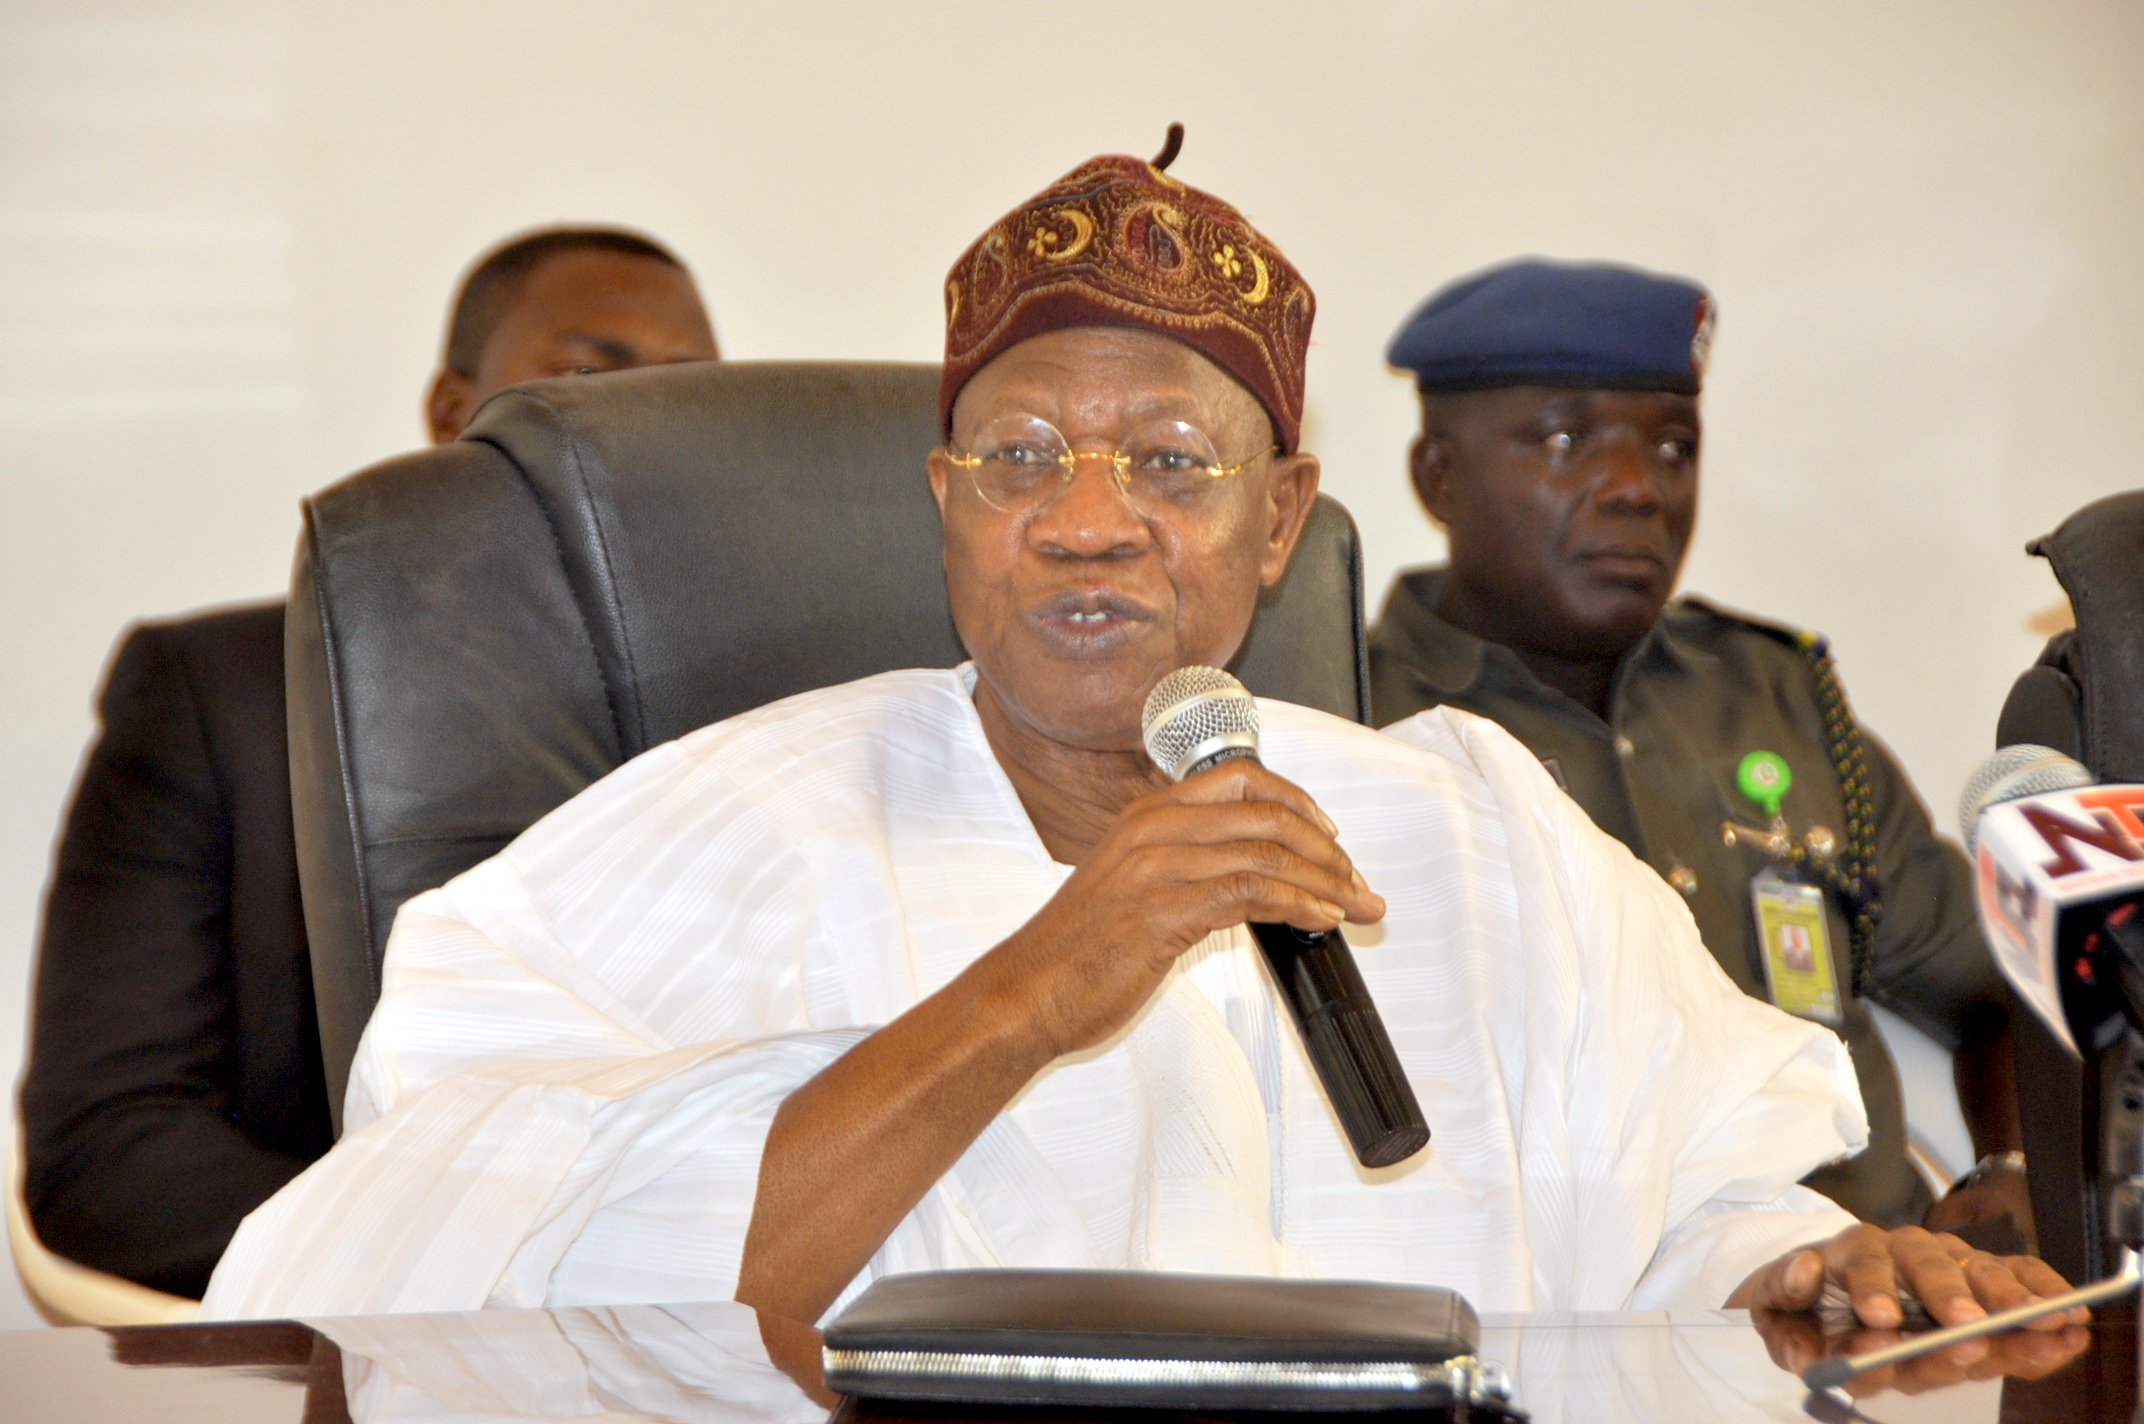 '#EndSARS One Of The Most Successful Protest In Nigeria': Lai Mohammed